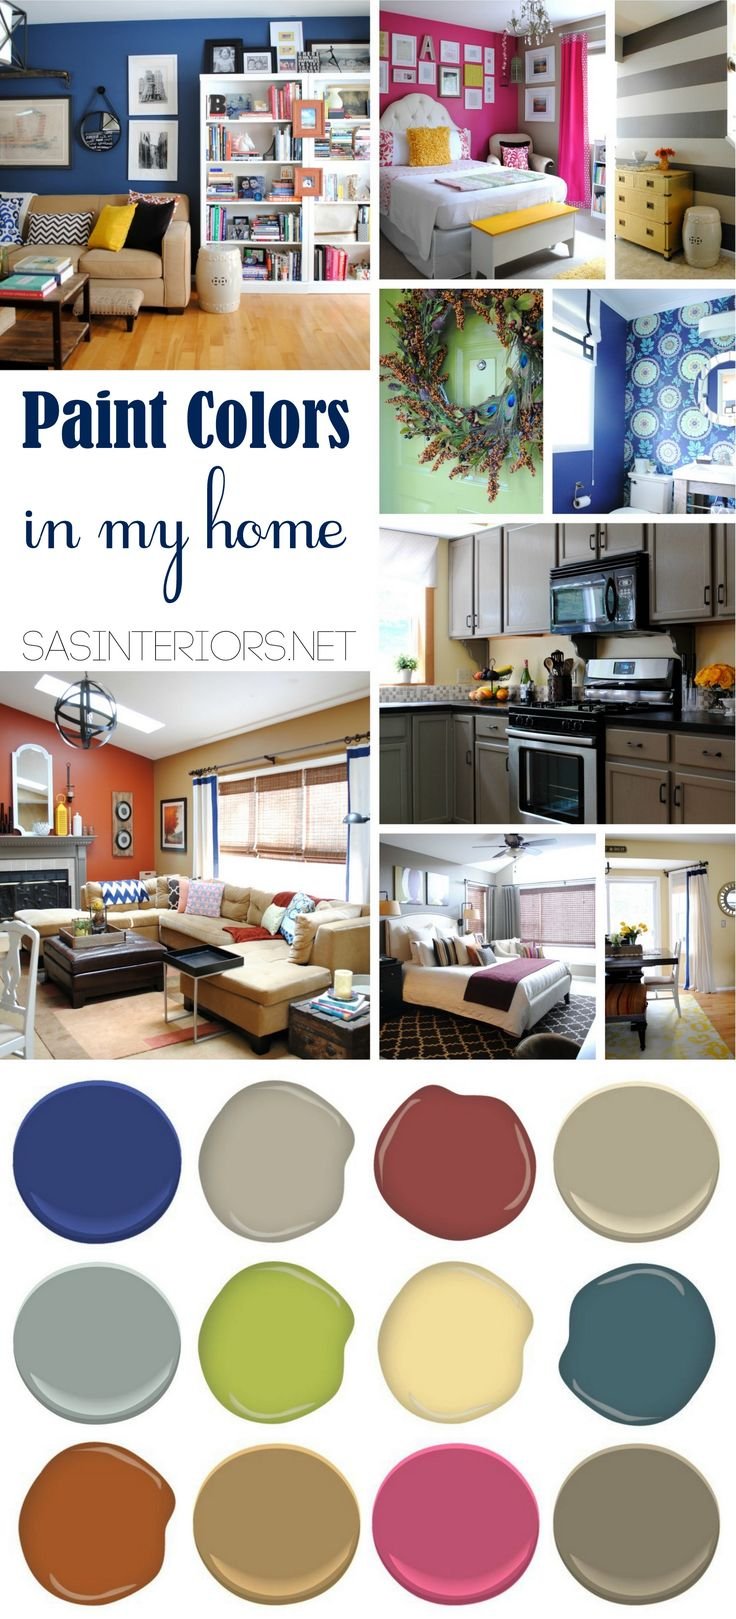 Paint Color Palette for the Whole House by @Jenna_Burger of www.sasinteriors.net